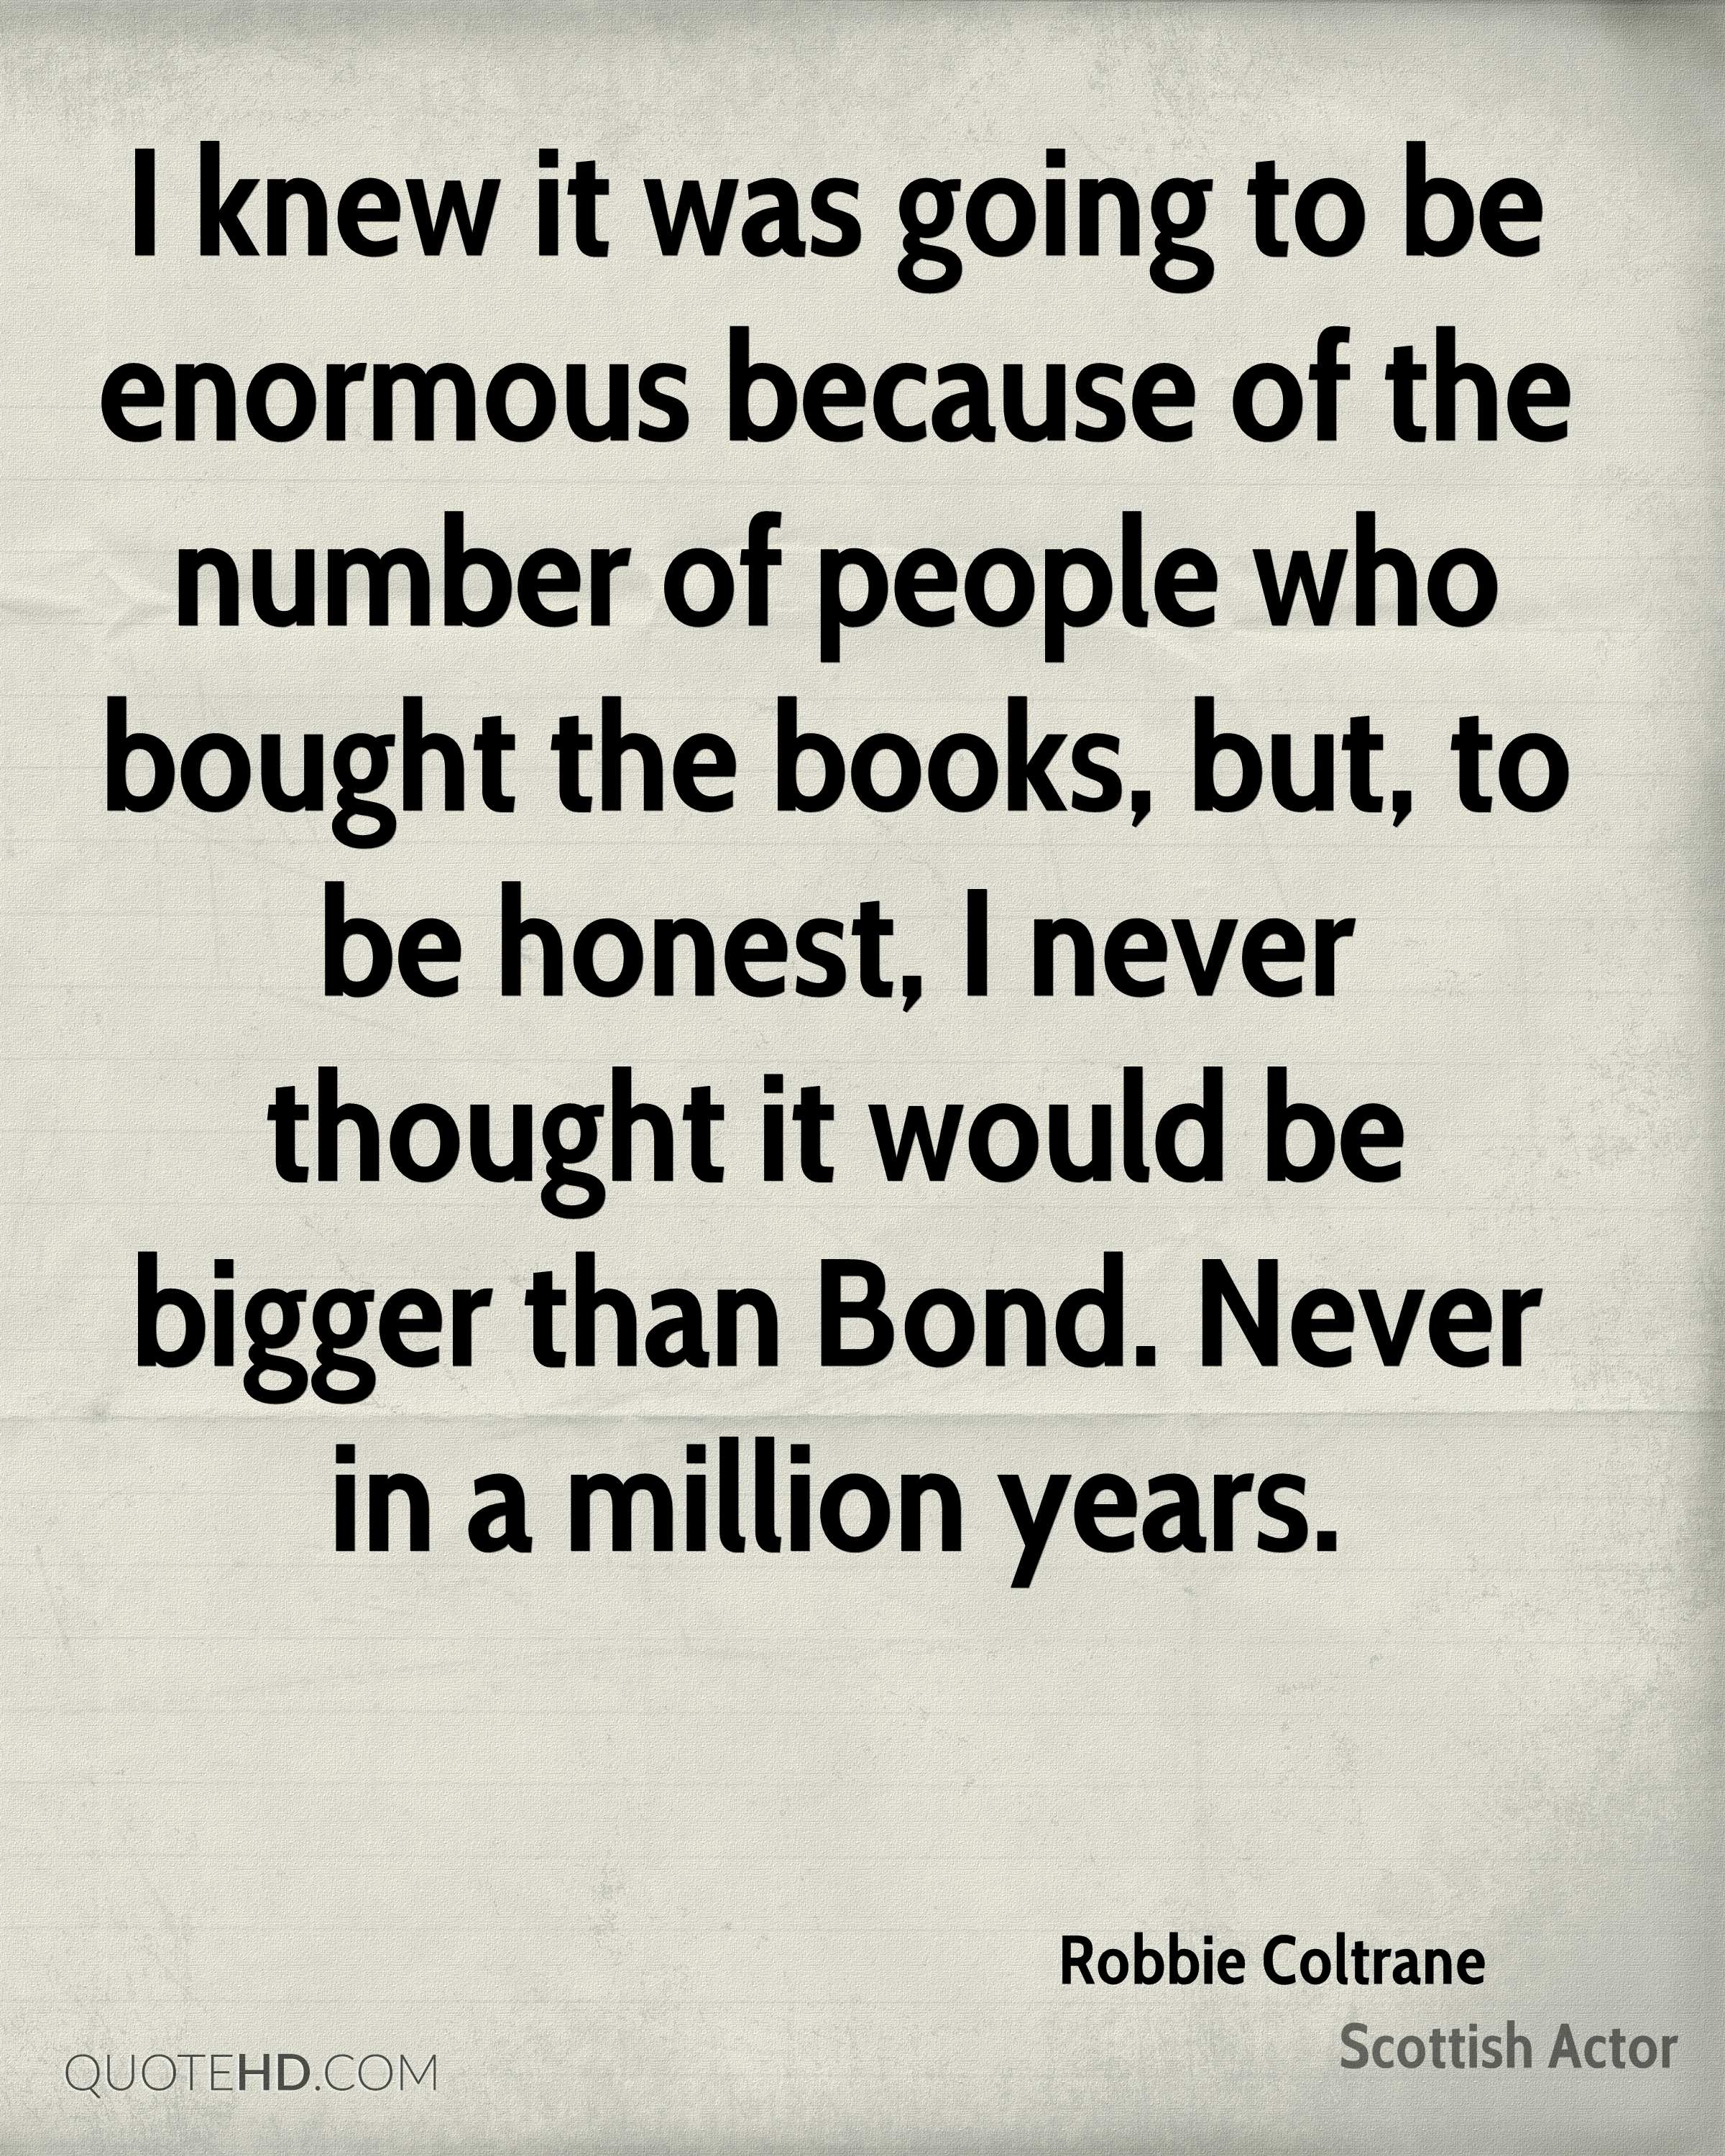 I knew it was going to be enormous because of the number of people who bought the books, but, to be honest, I never thought it would be bigger than Bond. Never in a million years.